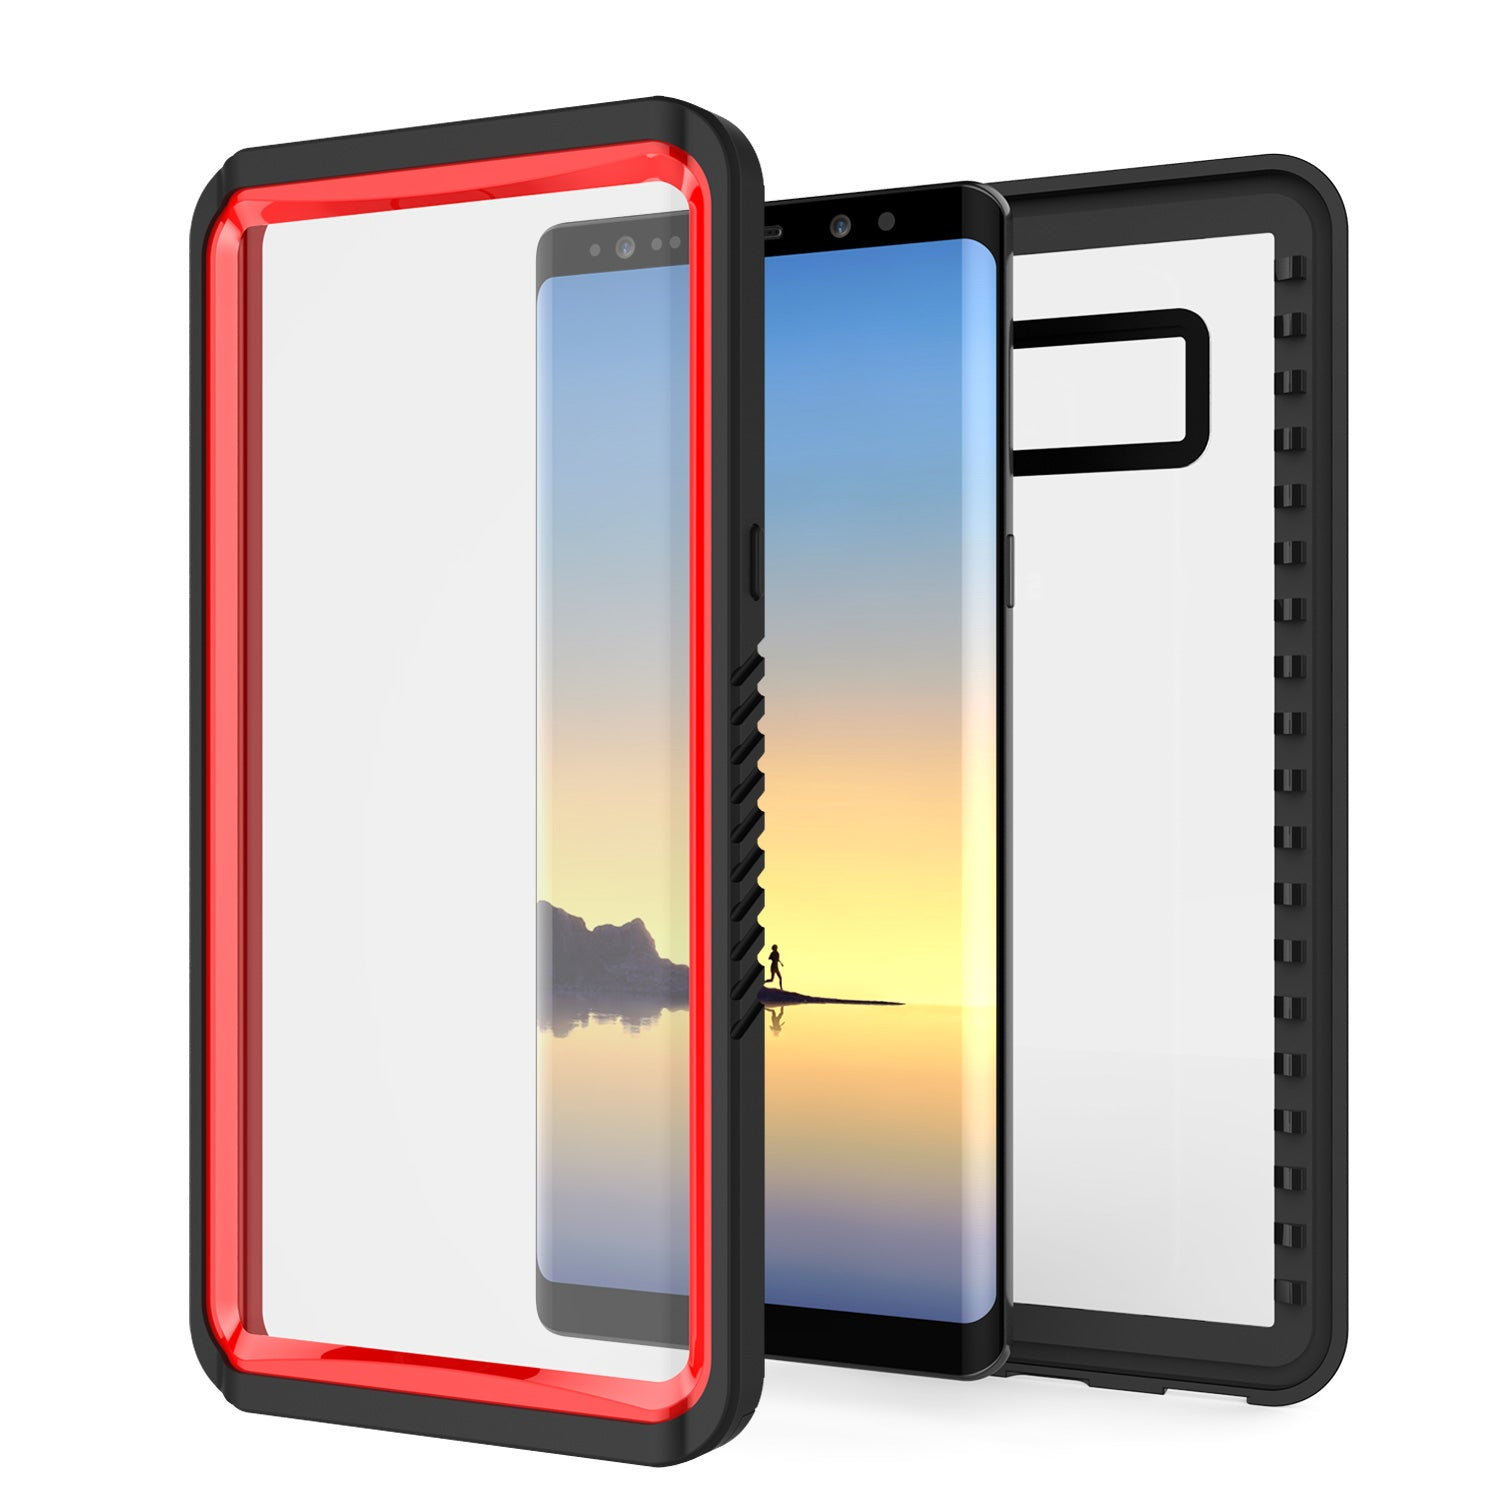 Galaxy Note 8 Anti-Shock Screen Protector Slim-Fit Case [Red]